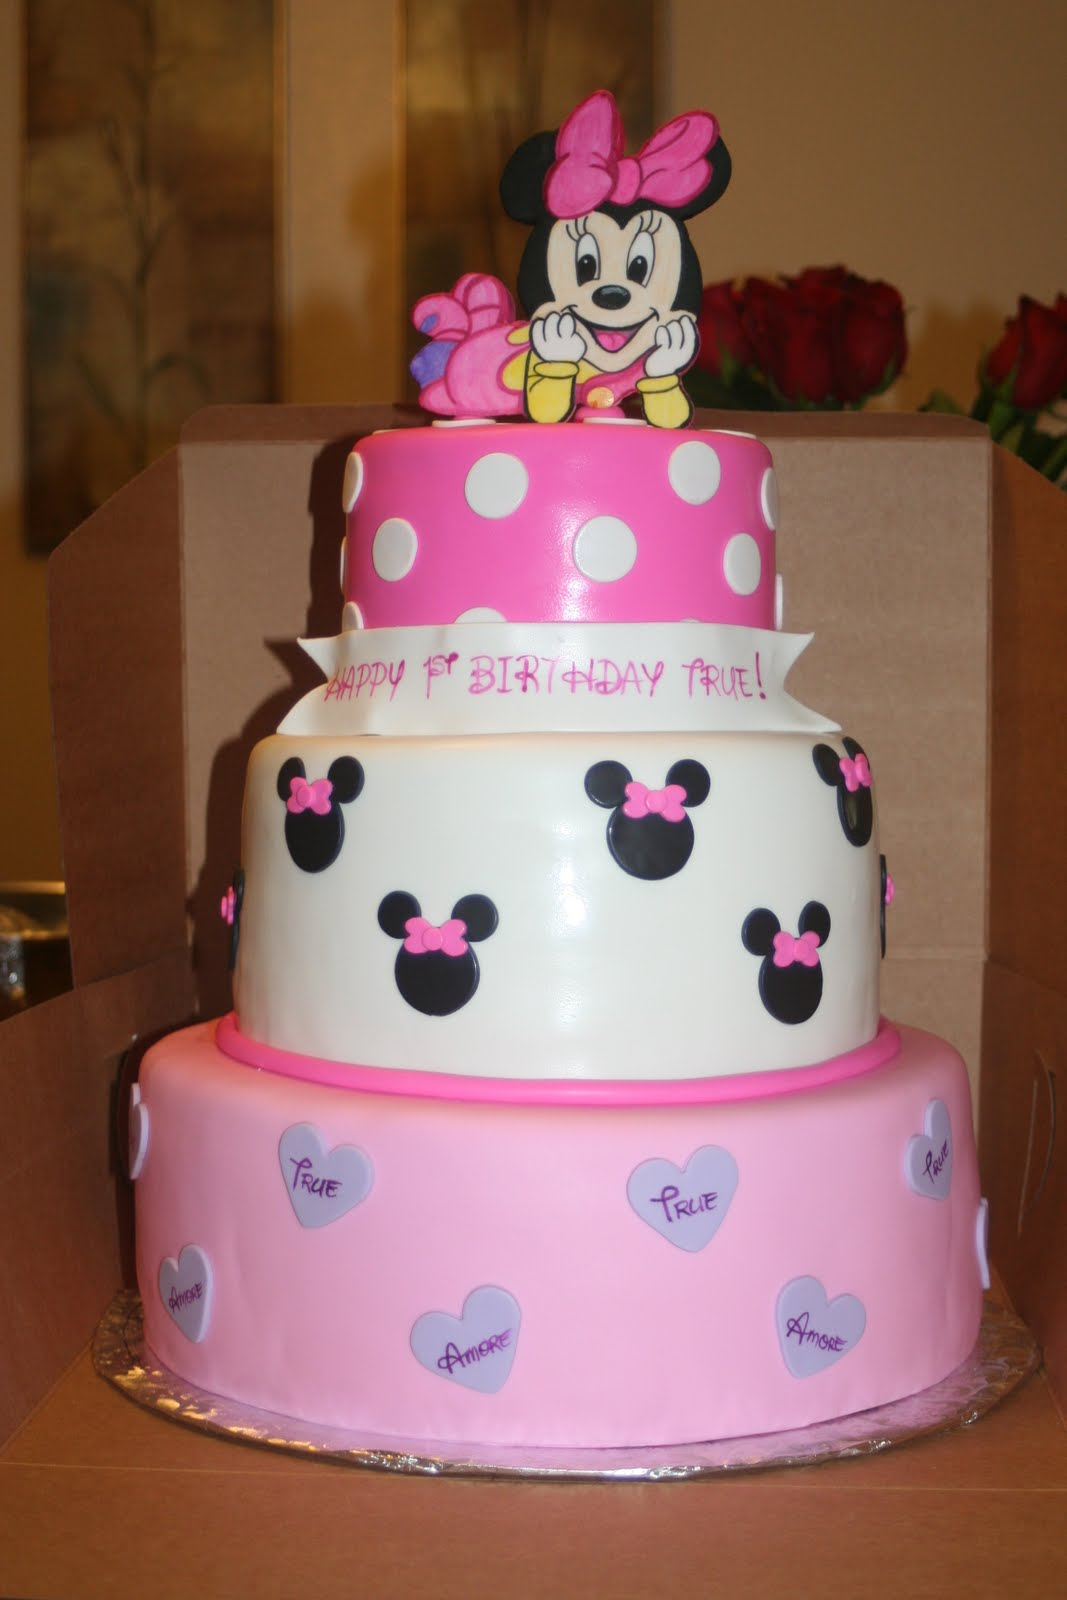 Pictures Of Birthday Cakes For Baby S First Birthday : Tara s Piece of Cake: Baby Minnie 1st Birthday